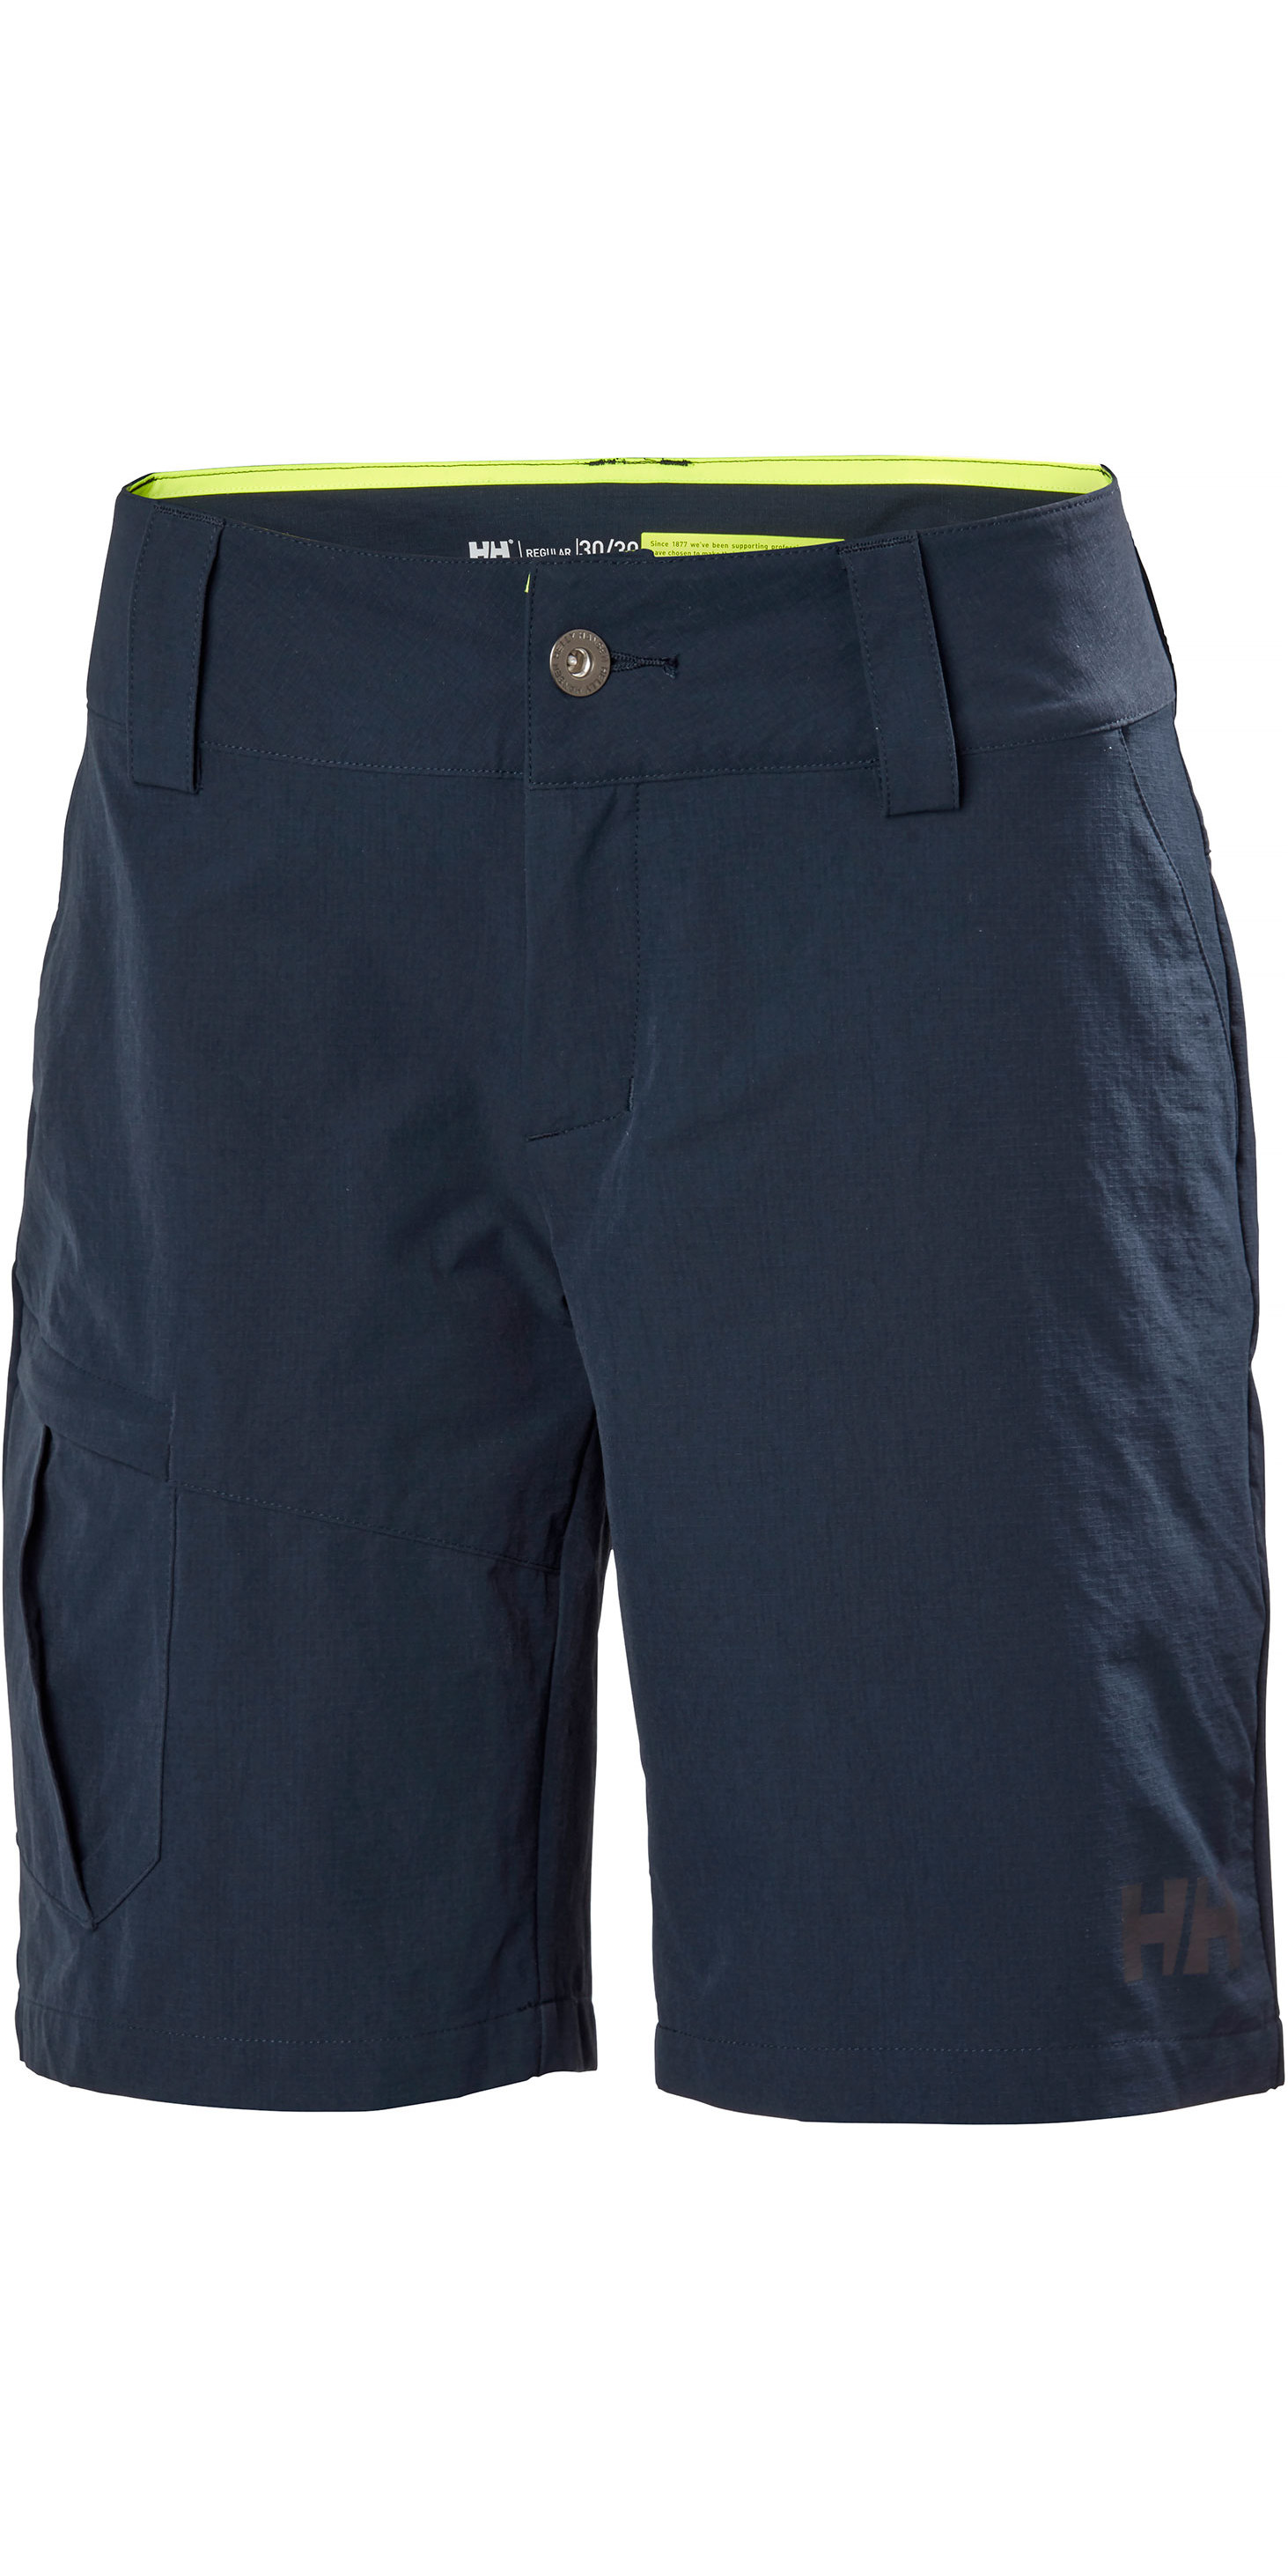 a1e1e75f6f 2019 Helly Hansen Womens Qd Cargo Shorts Navy 33942 - Technical Sailing  Shorts - Shore Wear | Wetsuit Outlet